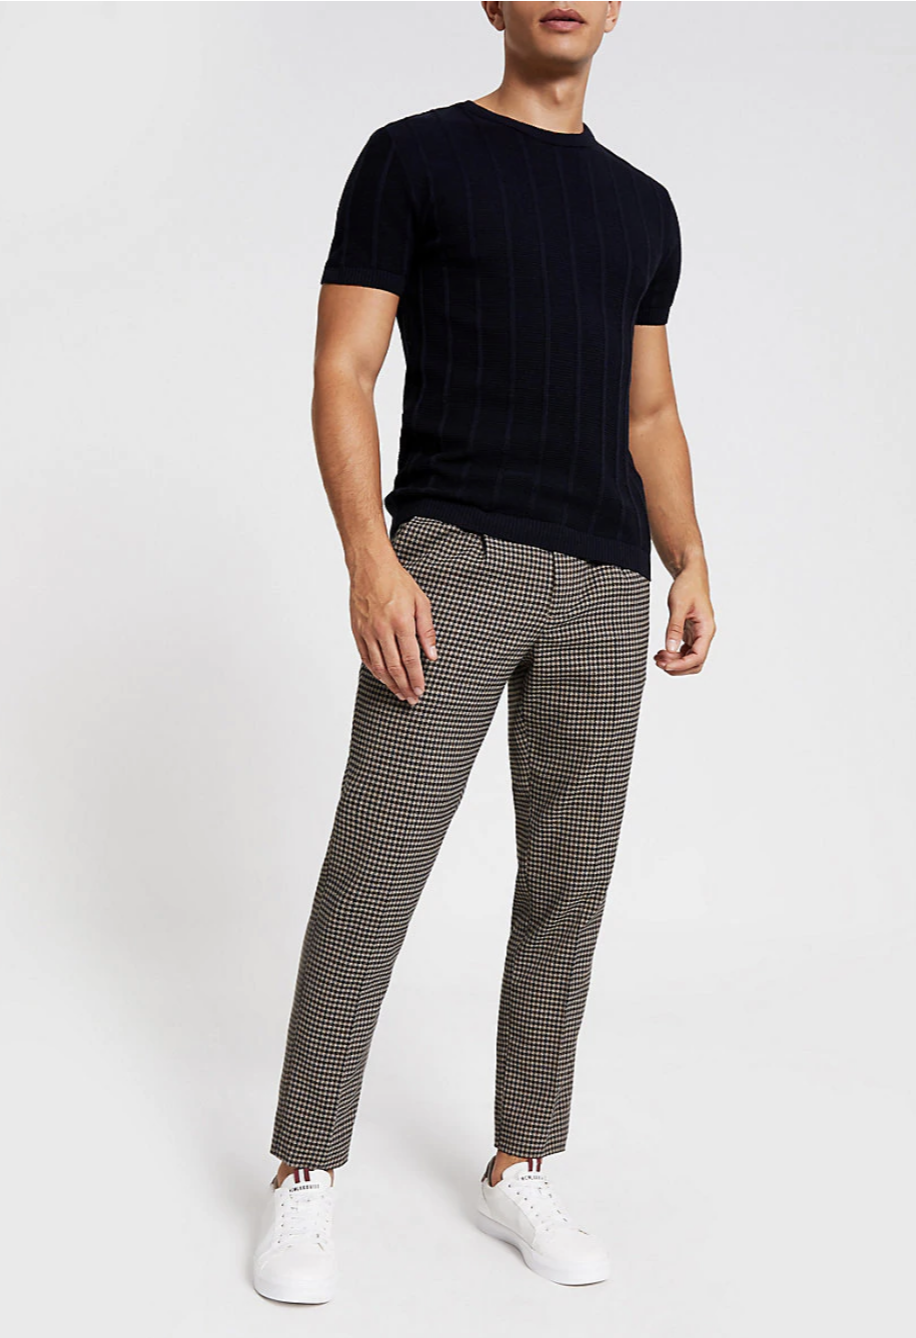 Mens check trousers